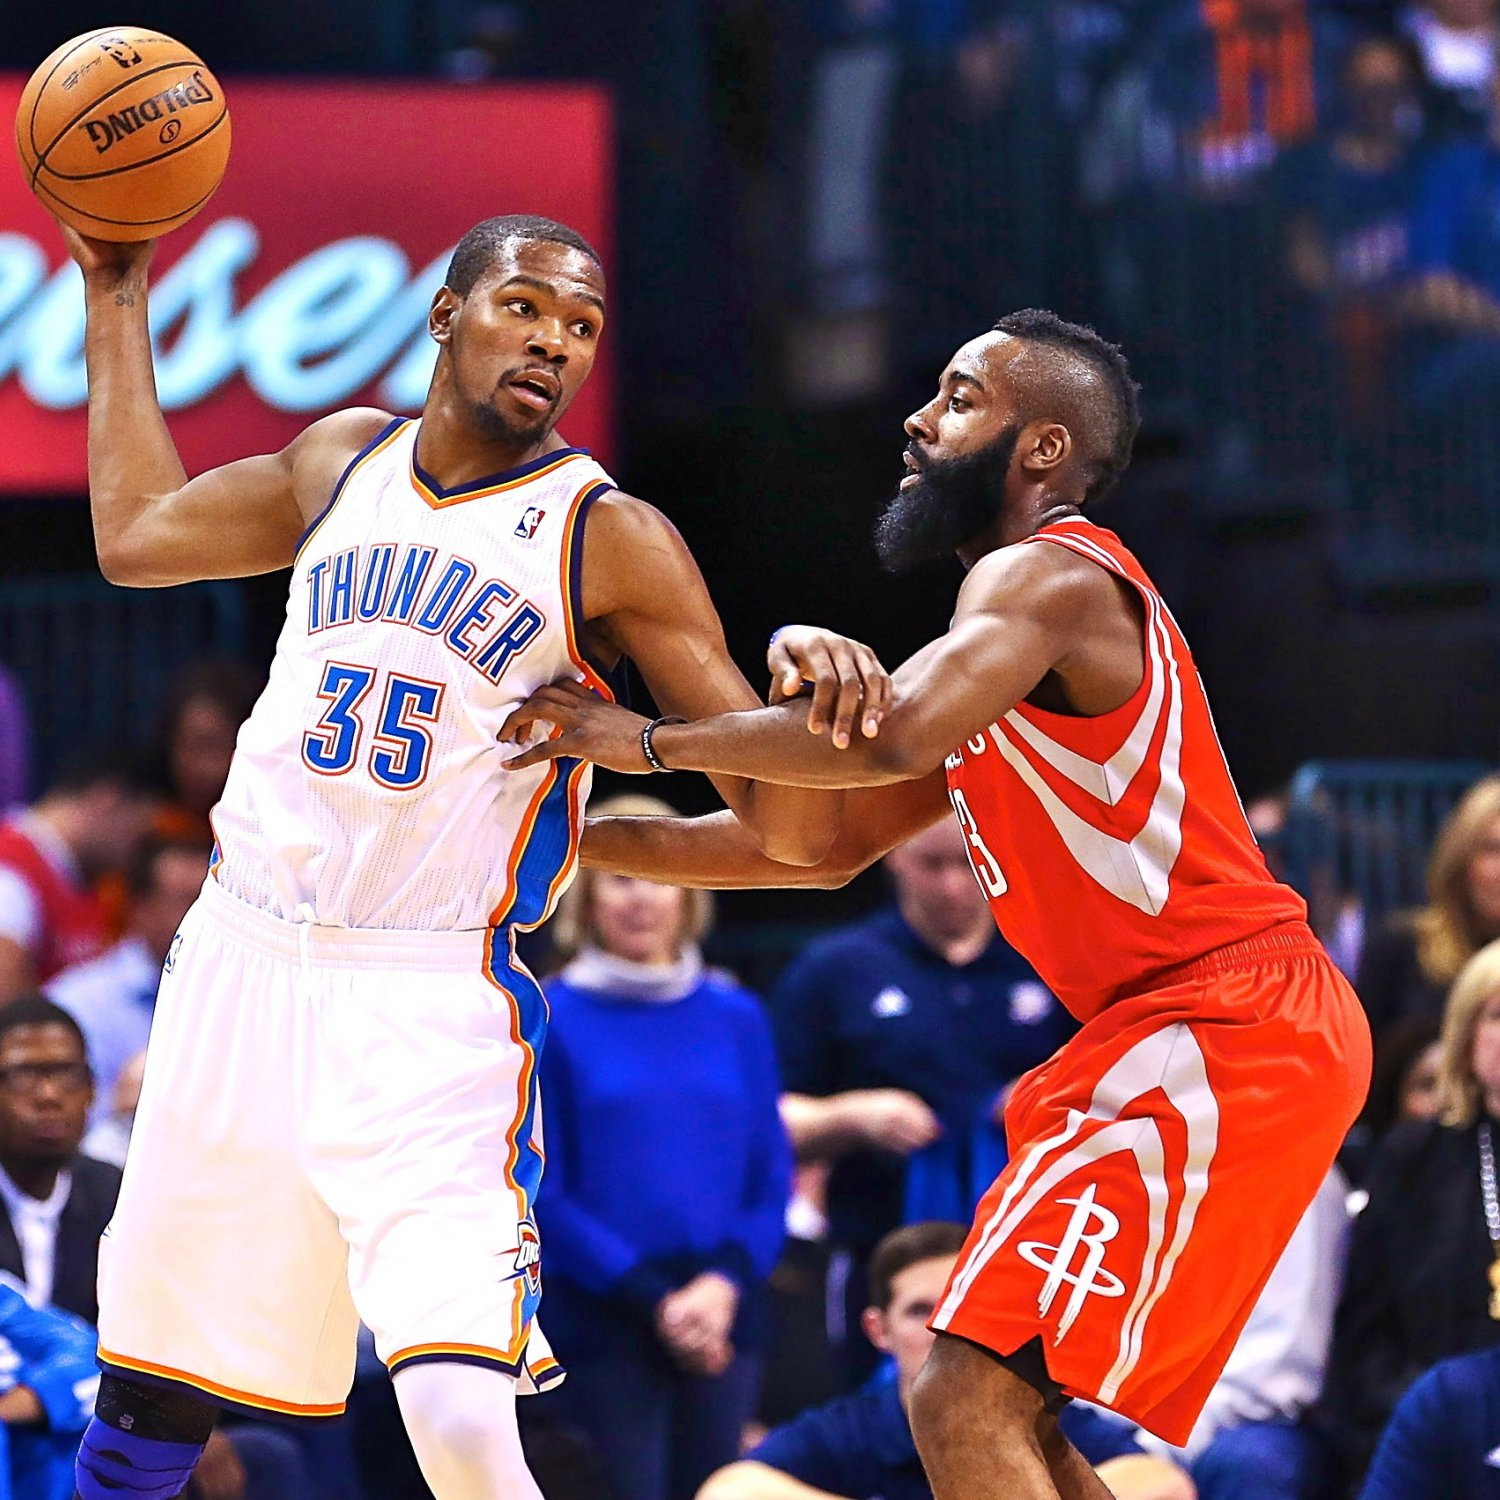 Houston Rockets Vs Okc: Houston Rockets Vs. OKC Thunder: Live Analysis, Score